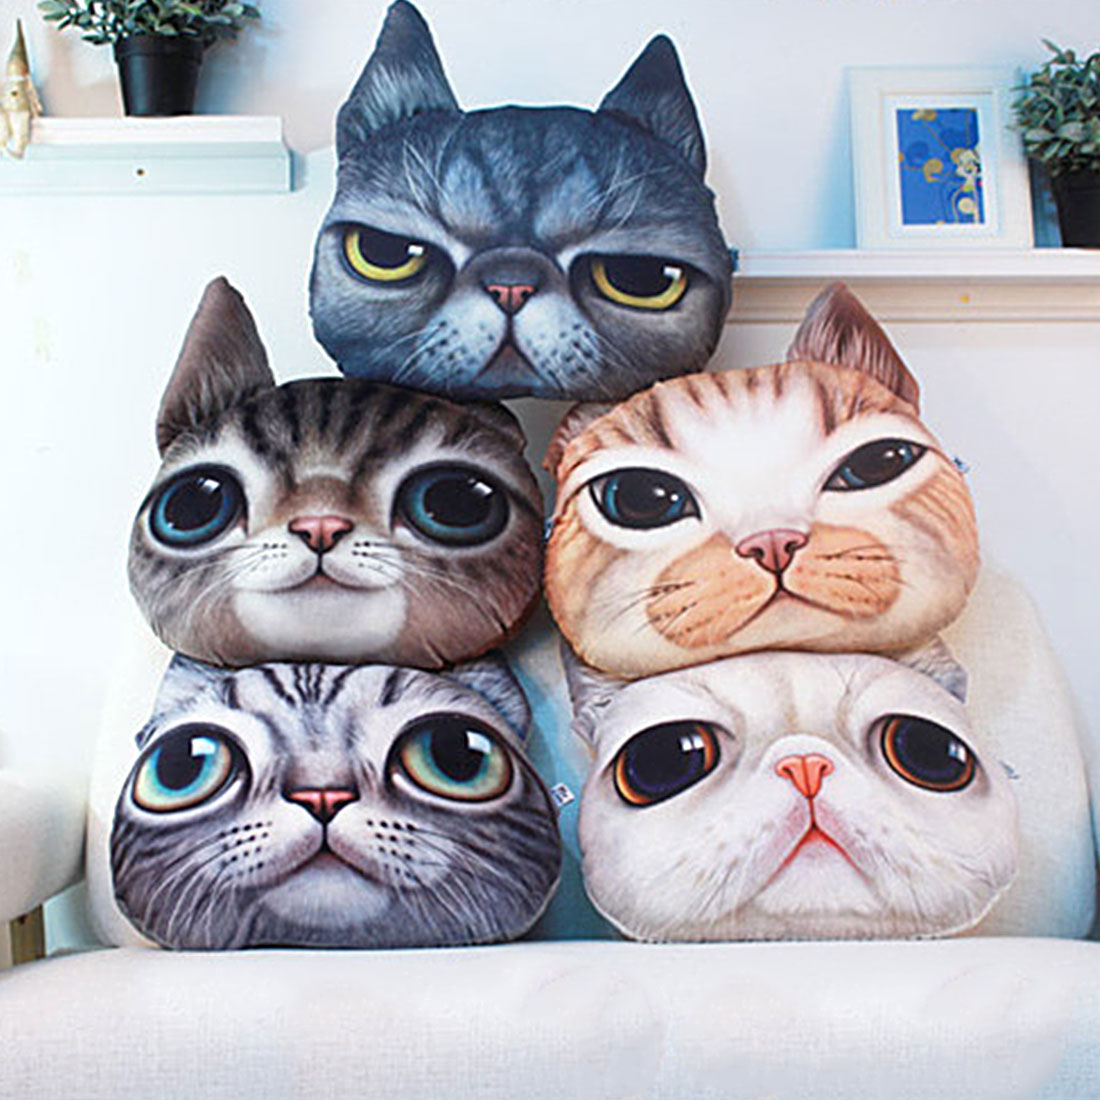 40cm*38cm Pillow Cushion Personality Car Cushion Creative Cat Shape Nap Smiley Face Pillow Gift Cute Seat Coussin